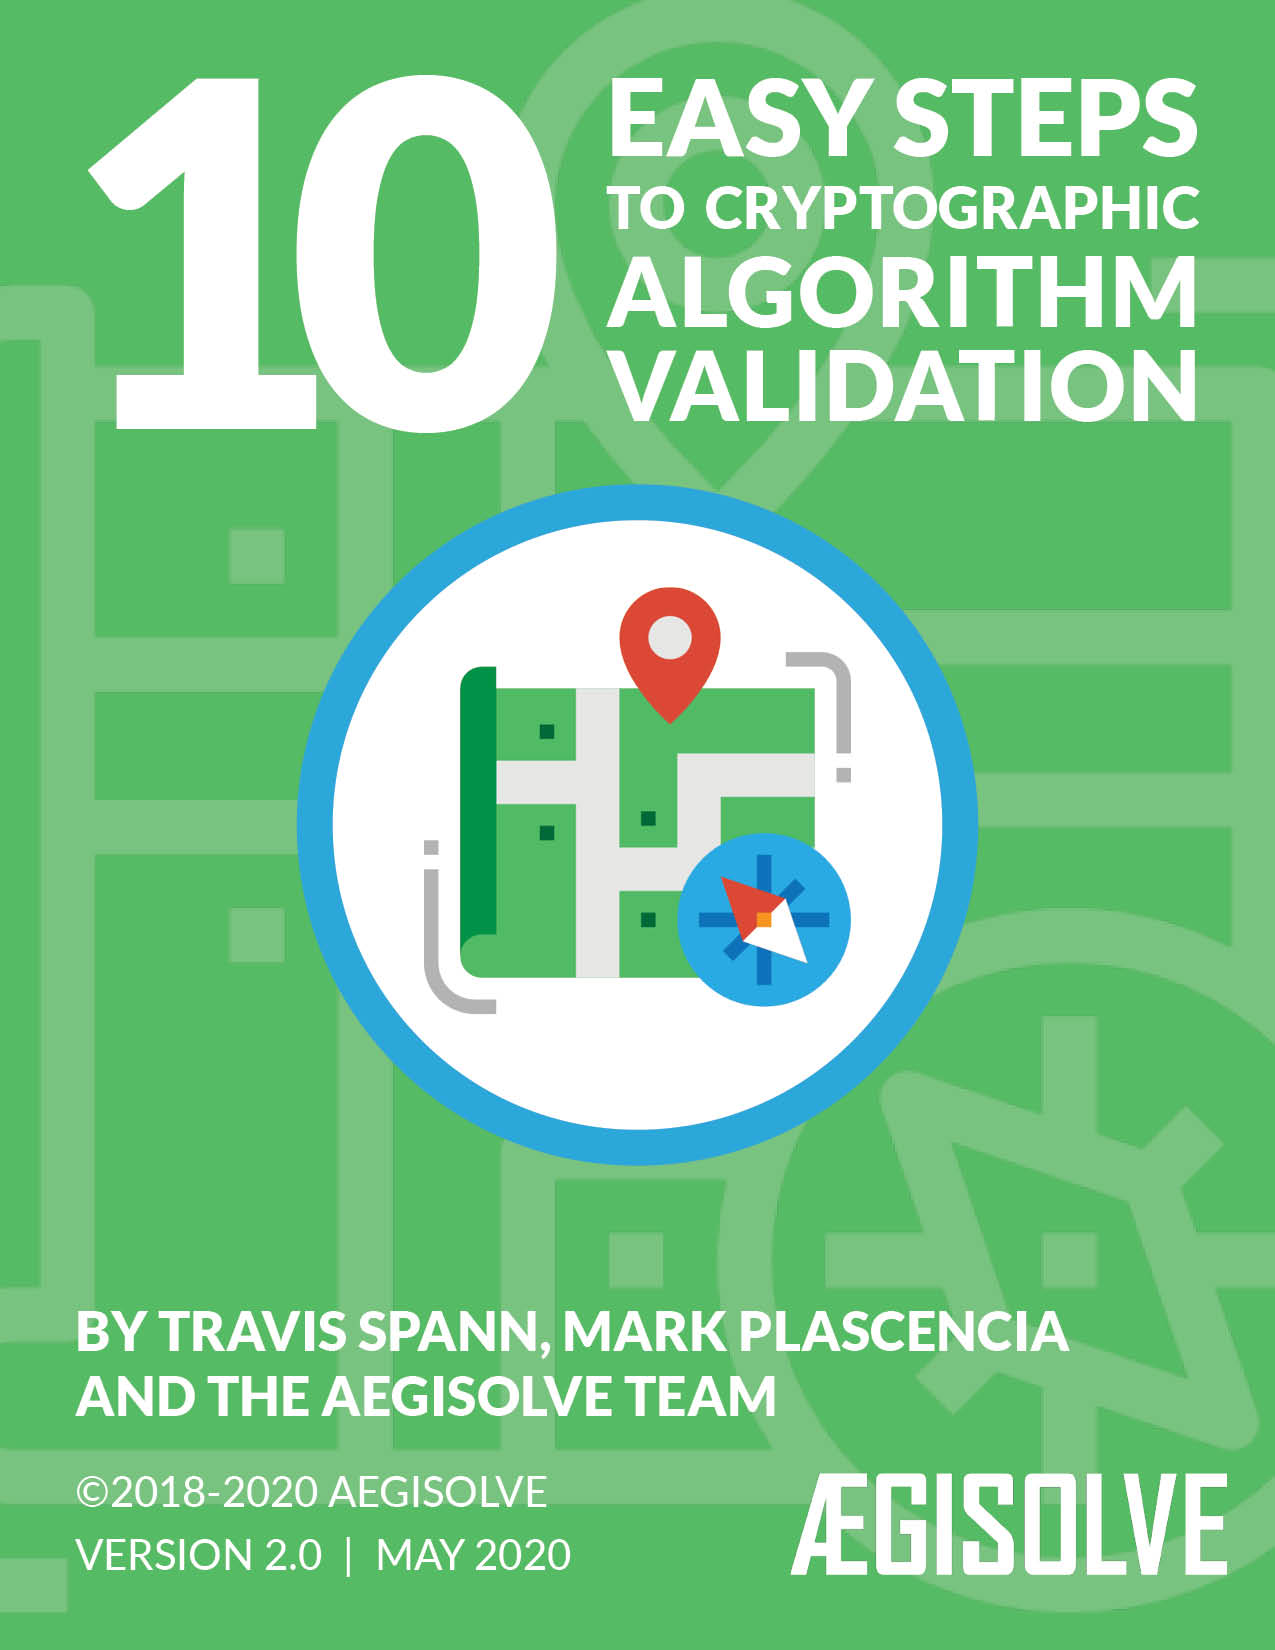 ACVTS cryptographic algorithm validation guide